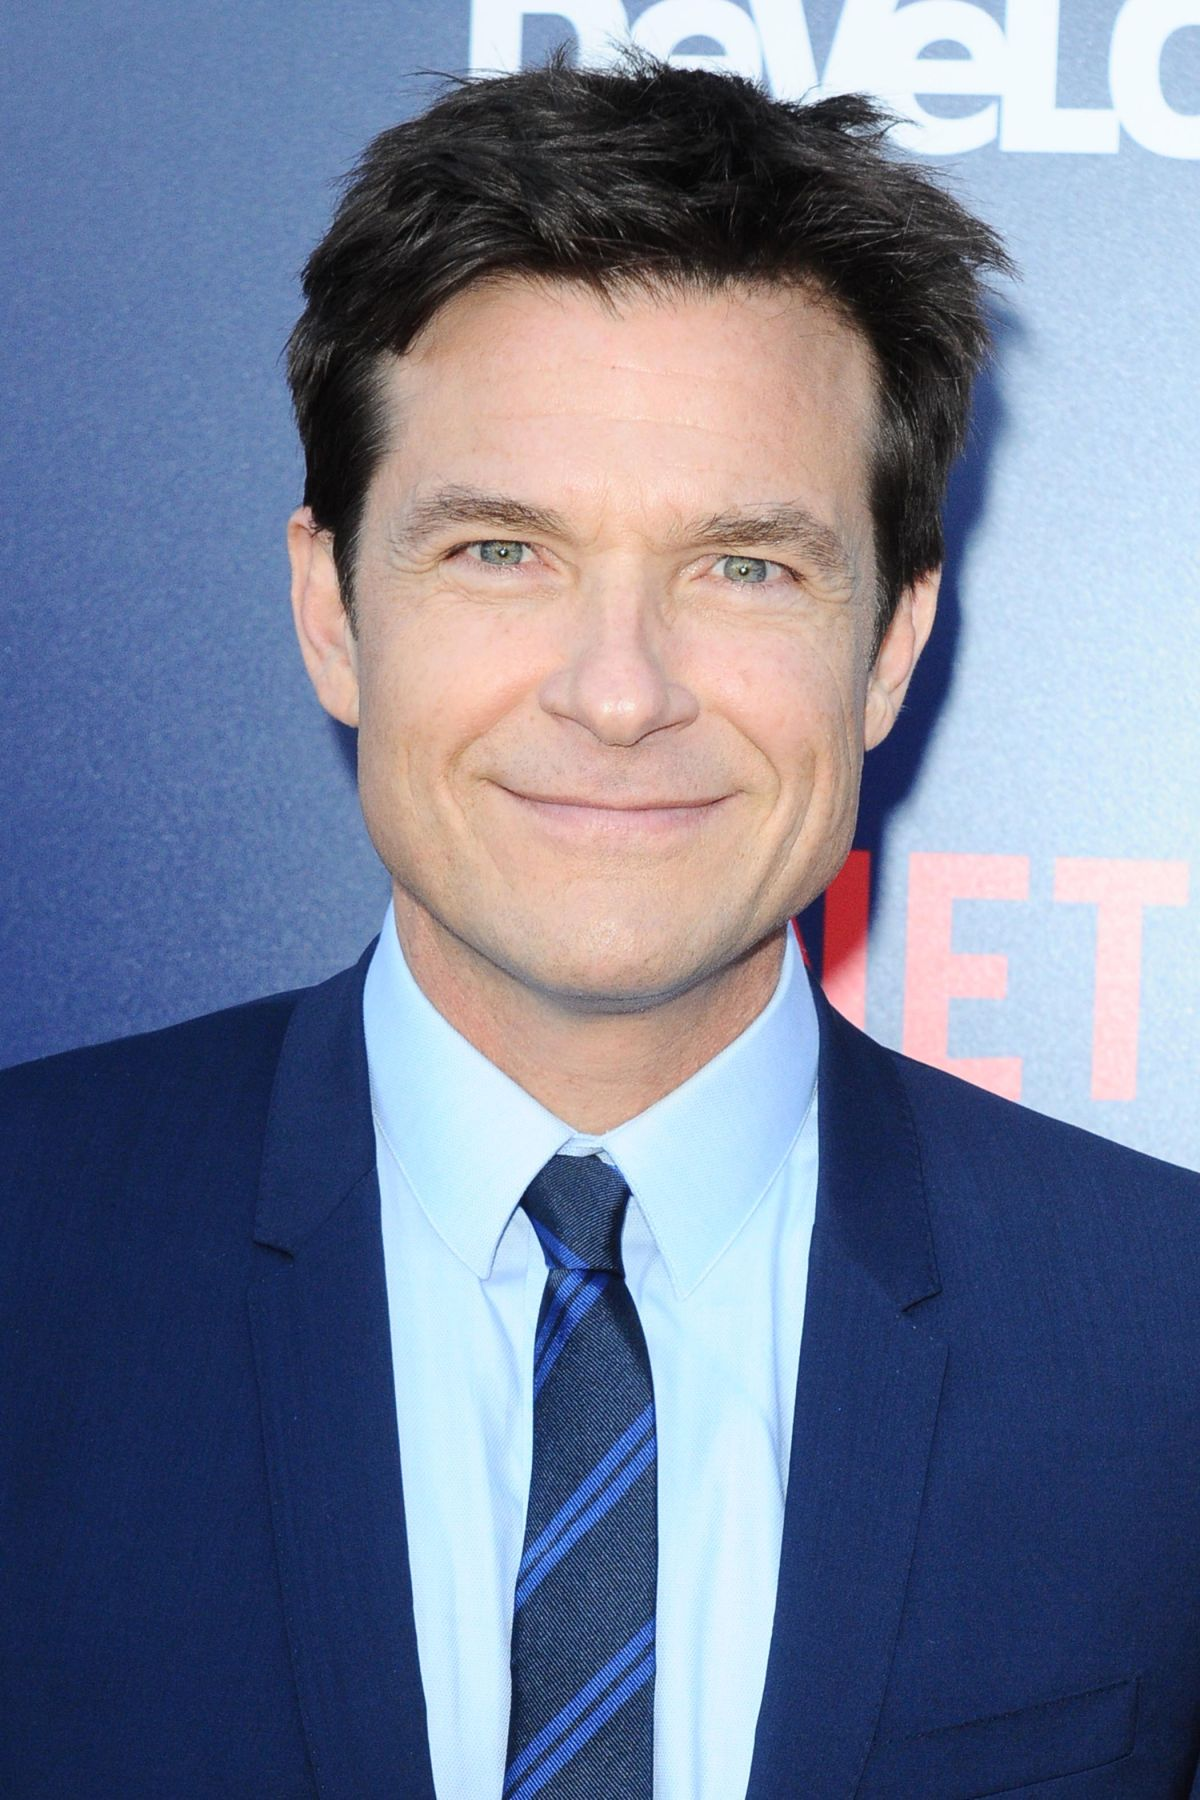 Jason Bateman | Arrested Development Wiki | FANDOM powered by Wikia